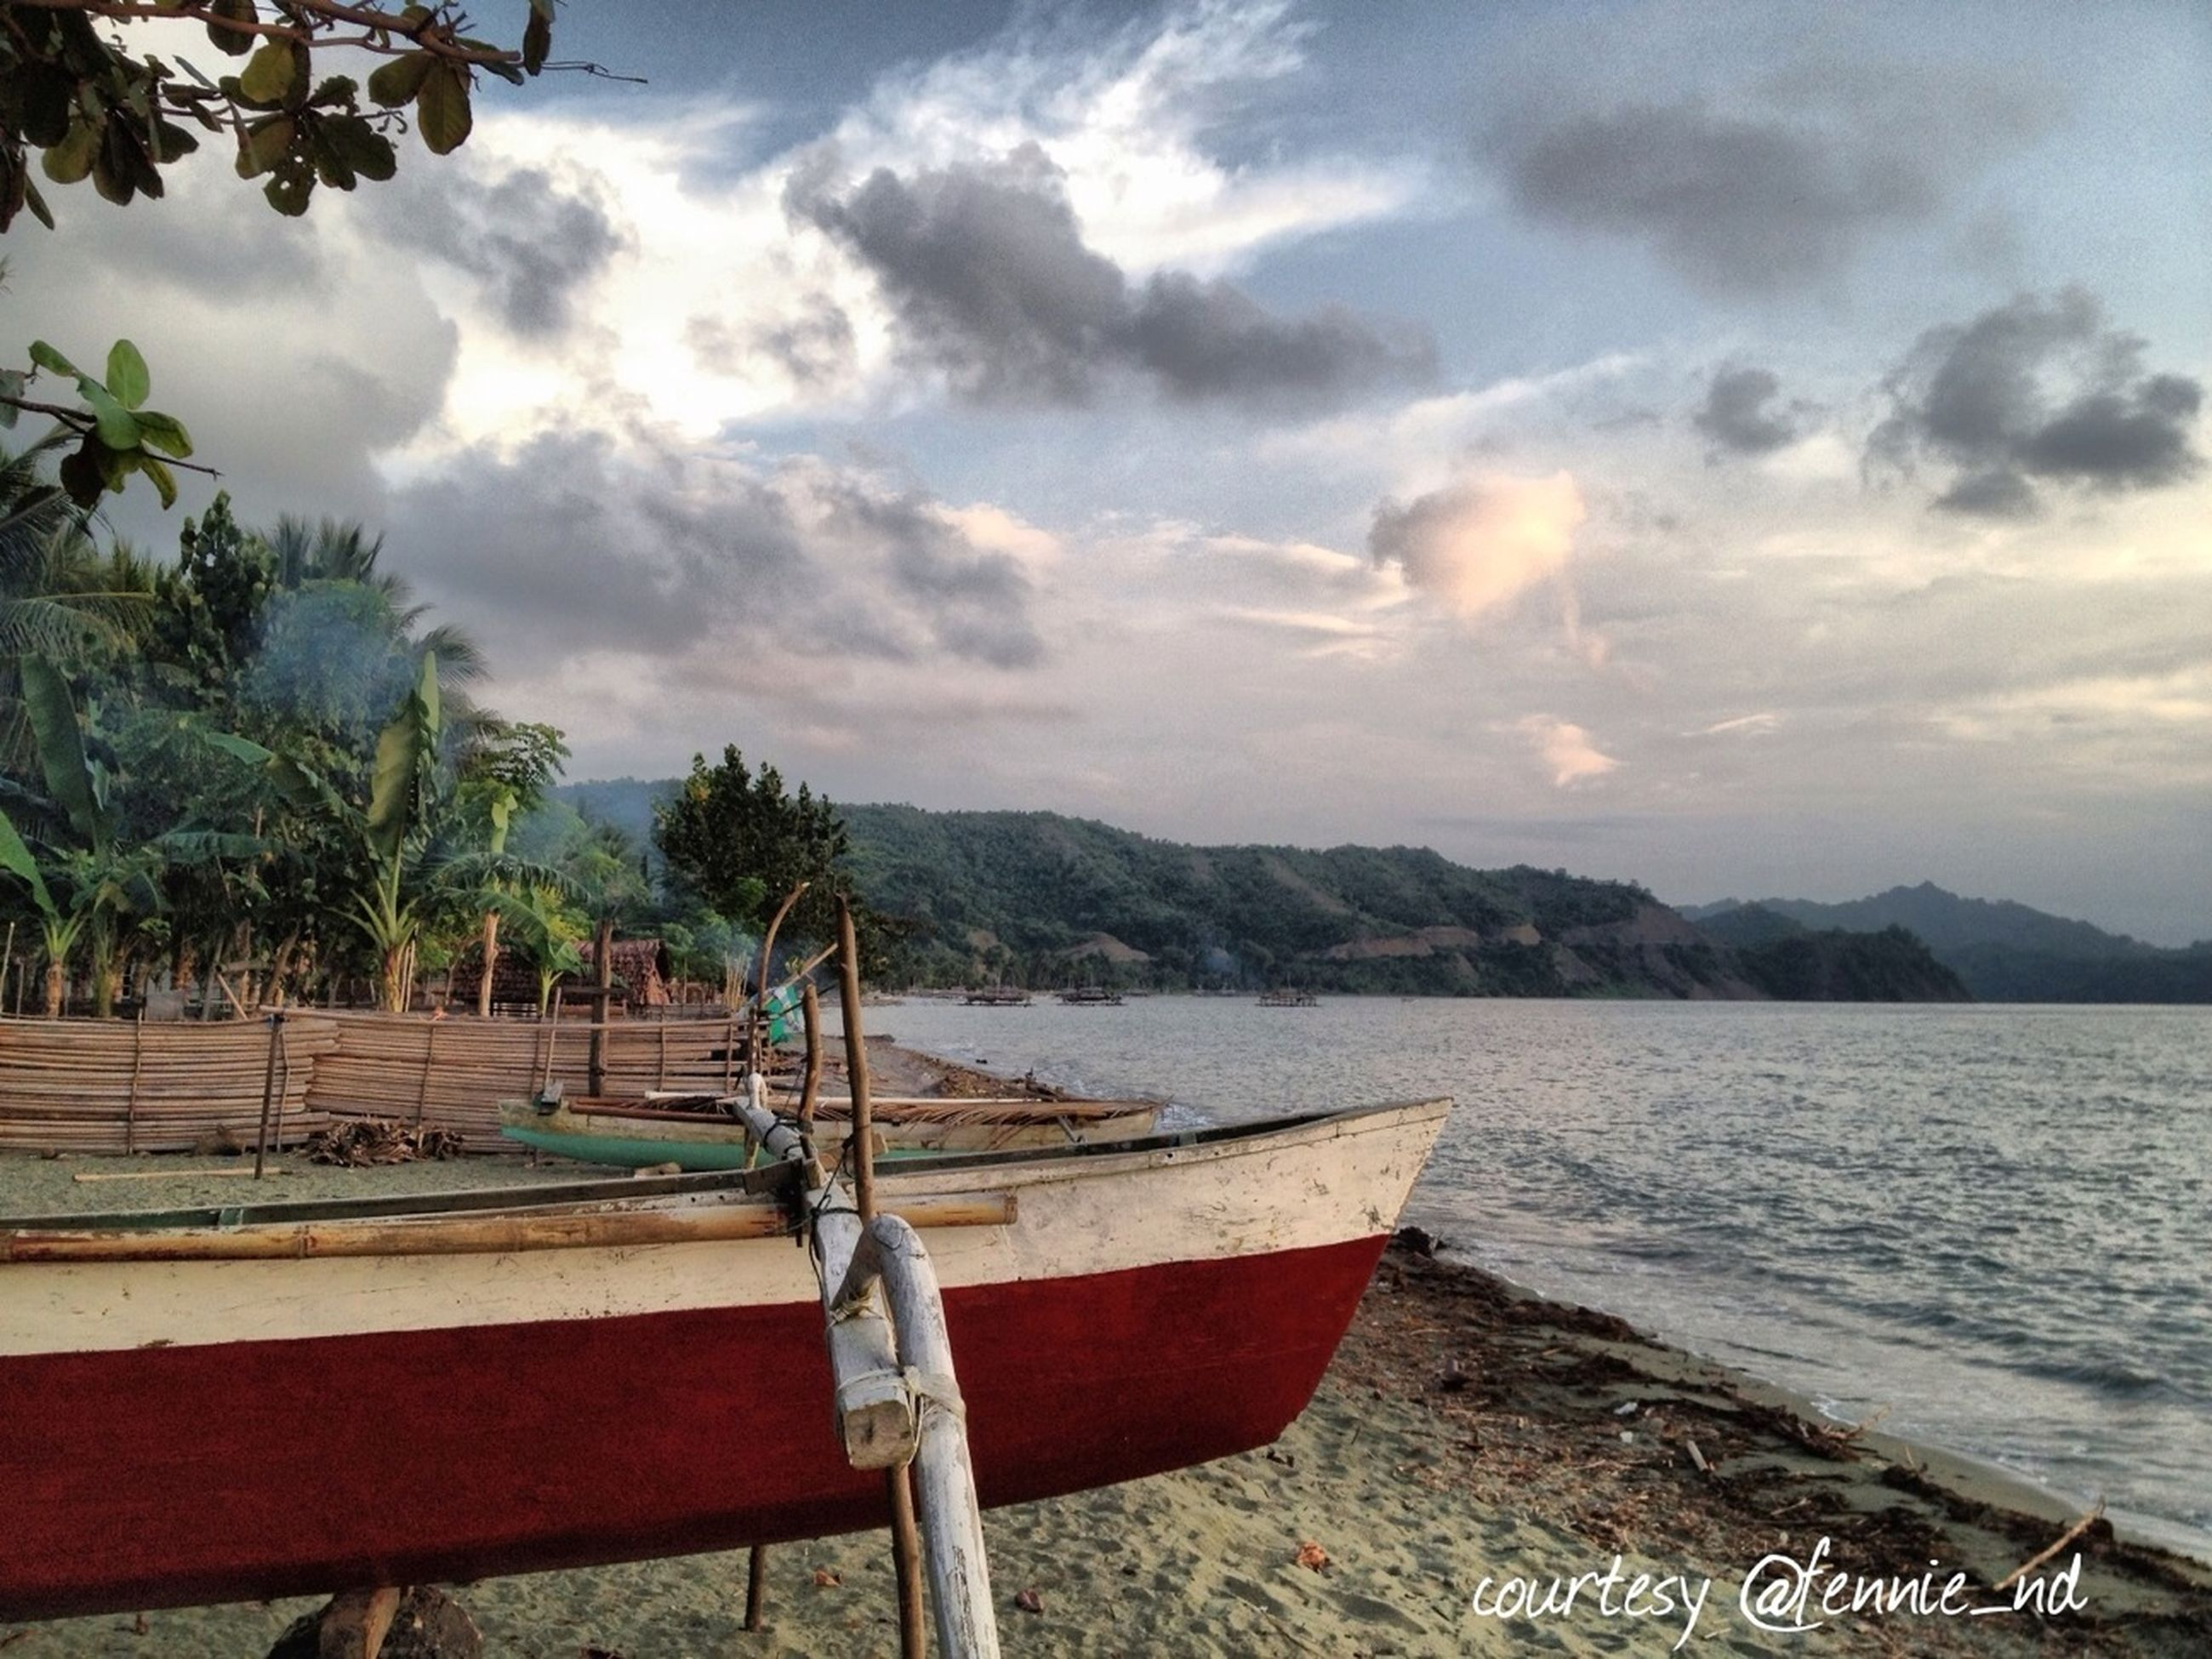 water, sky, nautical vessel, boat, sea, tranquility, tranquil scene, cloud - sky, scenics, nature, beauty in nature, mountain, transportation, moored, cloud, lake, cloudy, pier, tree, mode of transport